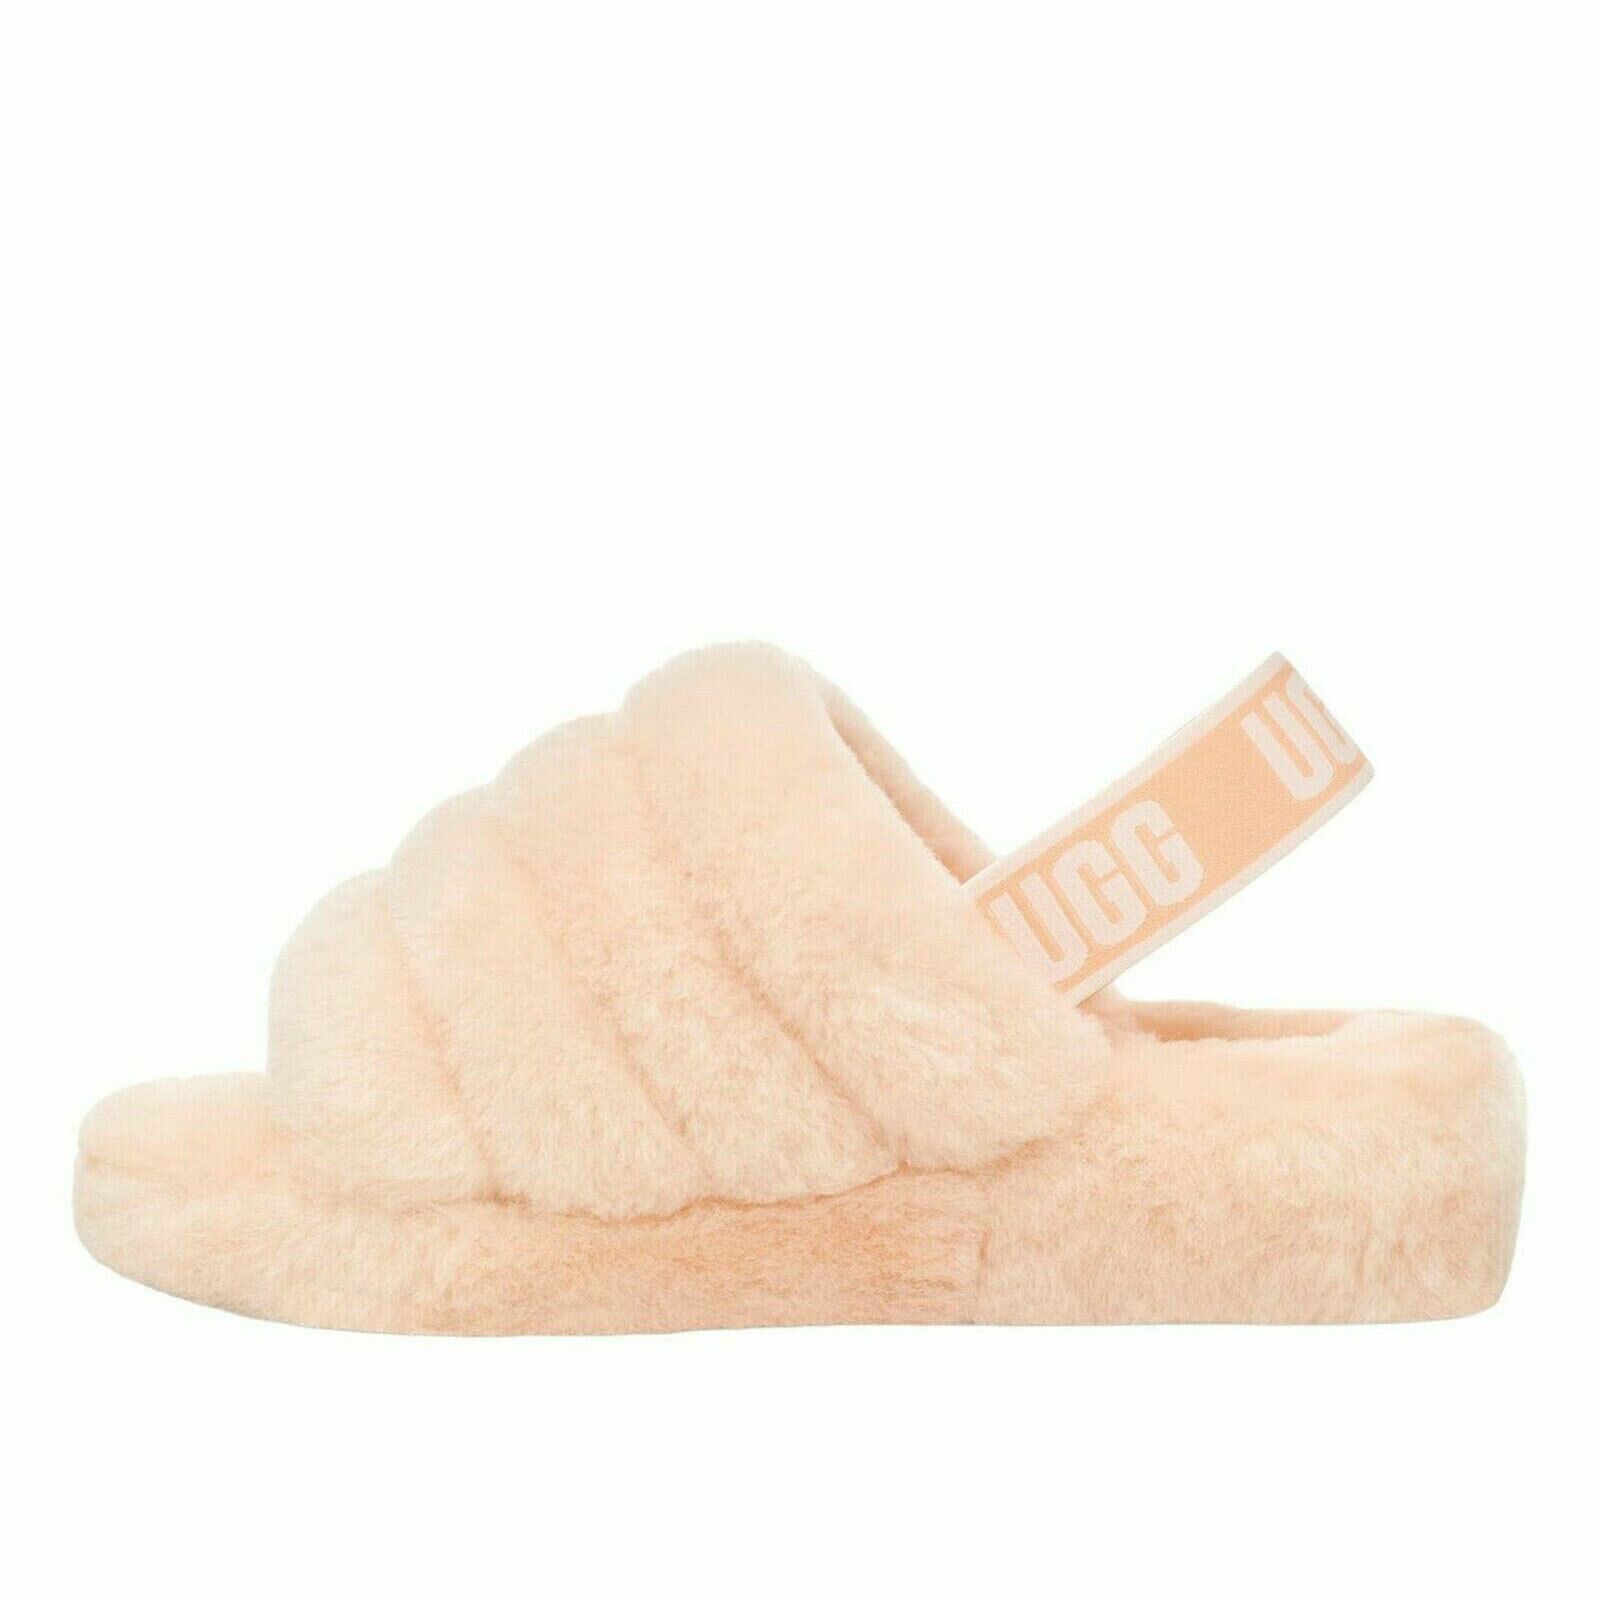 Primary image for UGG Fluff Yeah Slide Scallop Women's Sheepskin Slipper Sandals 1095119